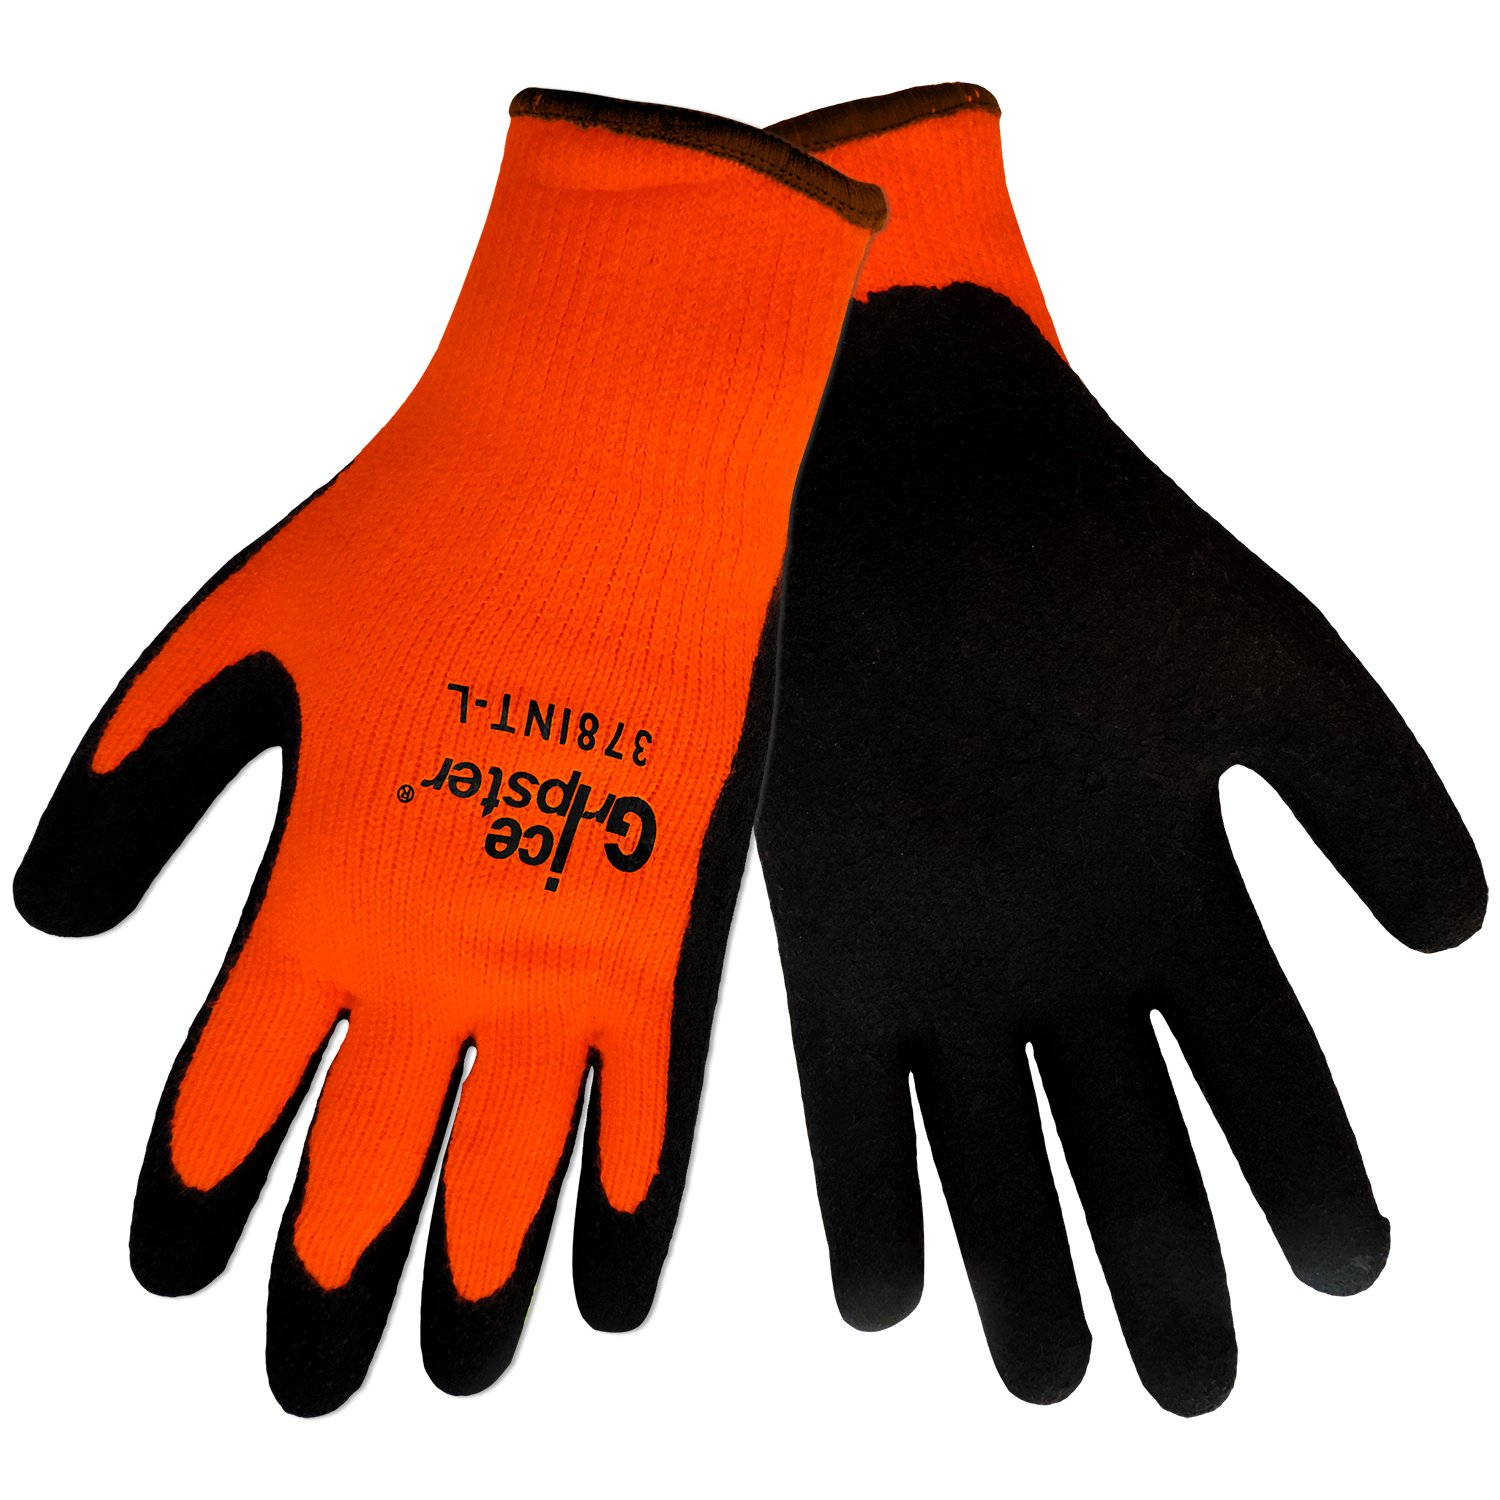 Global Glove 378INT Ice Gripster Foam Rubber Glove, Large, Orange/Black (Case of 72) by Global Glove B00AIXW4WQ